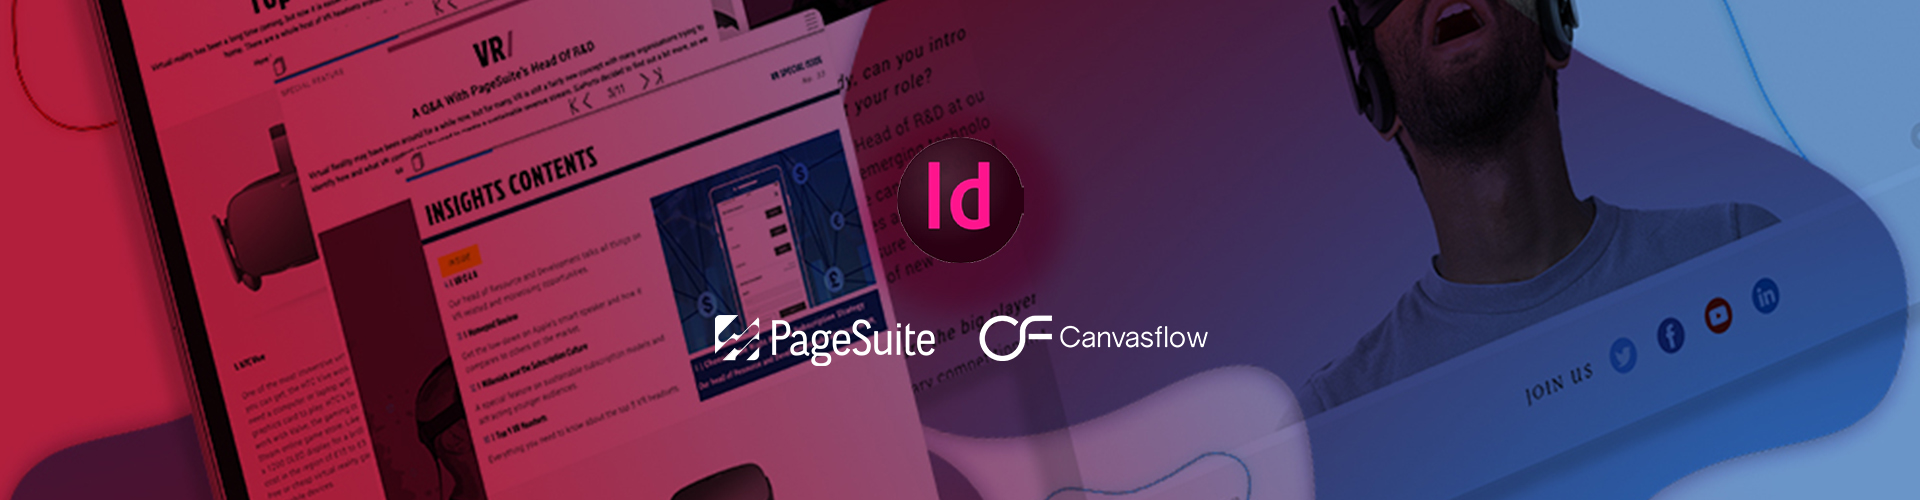 Image of WEBINAR: Driving engagement:  From InDesign to responsive mobile editions